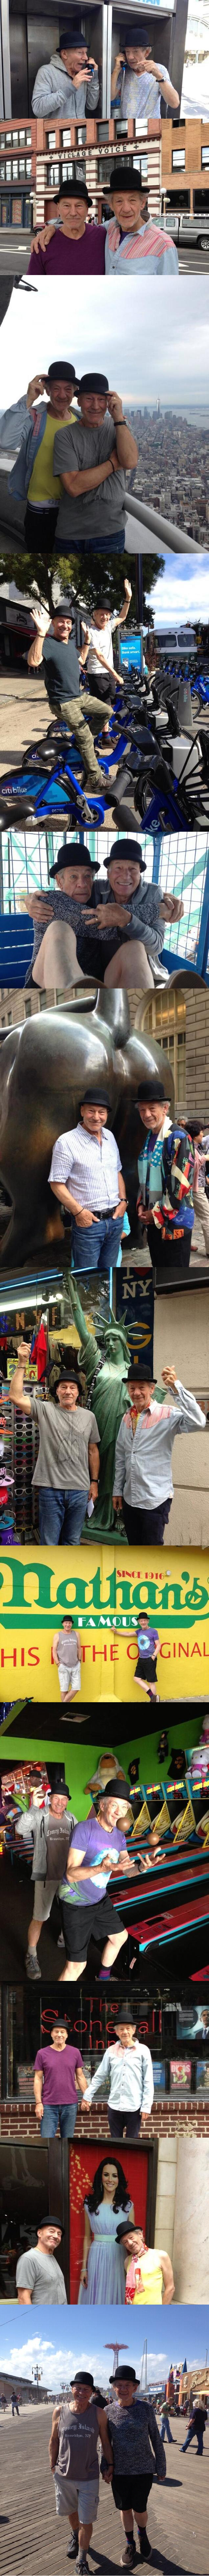 This Just Makes Me Happy. Apparently SIr Patrick Stewart and Sir Ian McKellen decided to have some shenanigans in NY on their last day in the city after their p